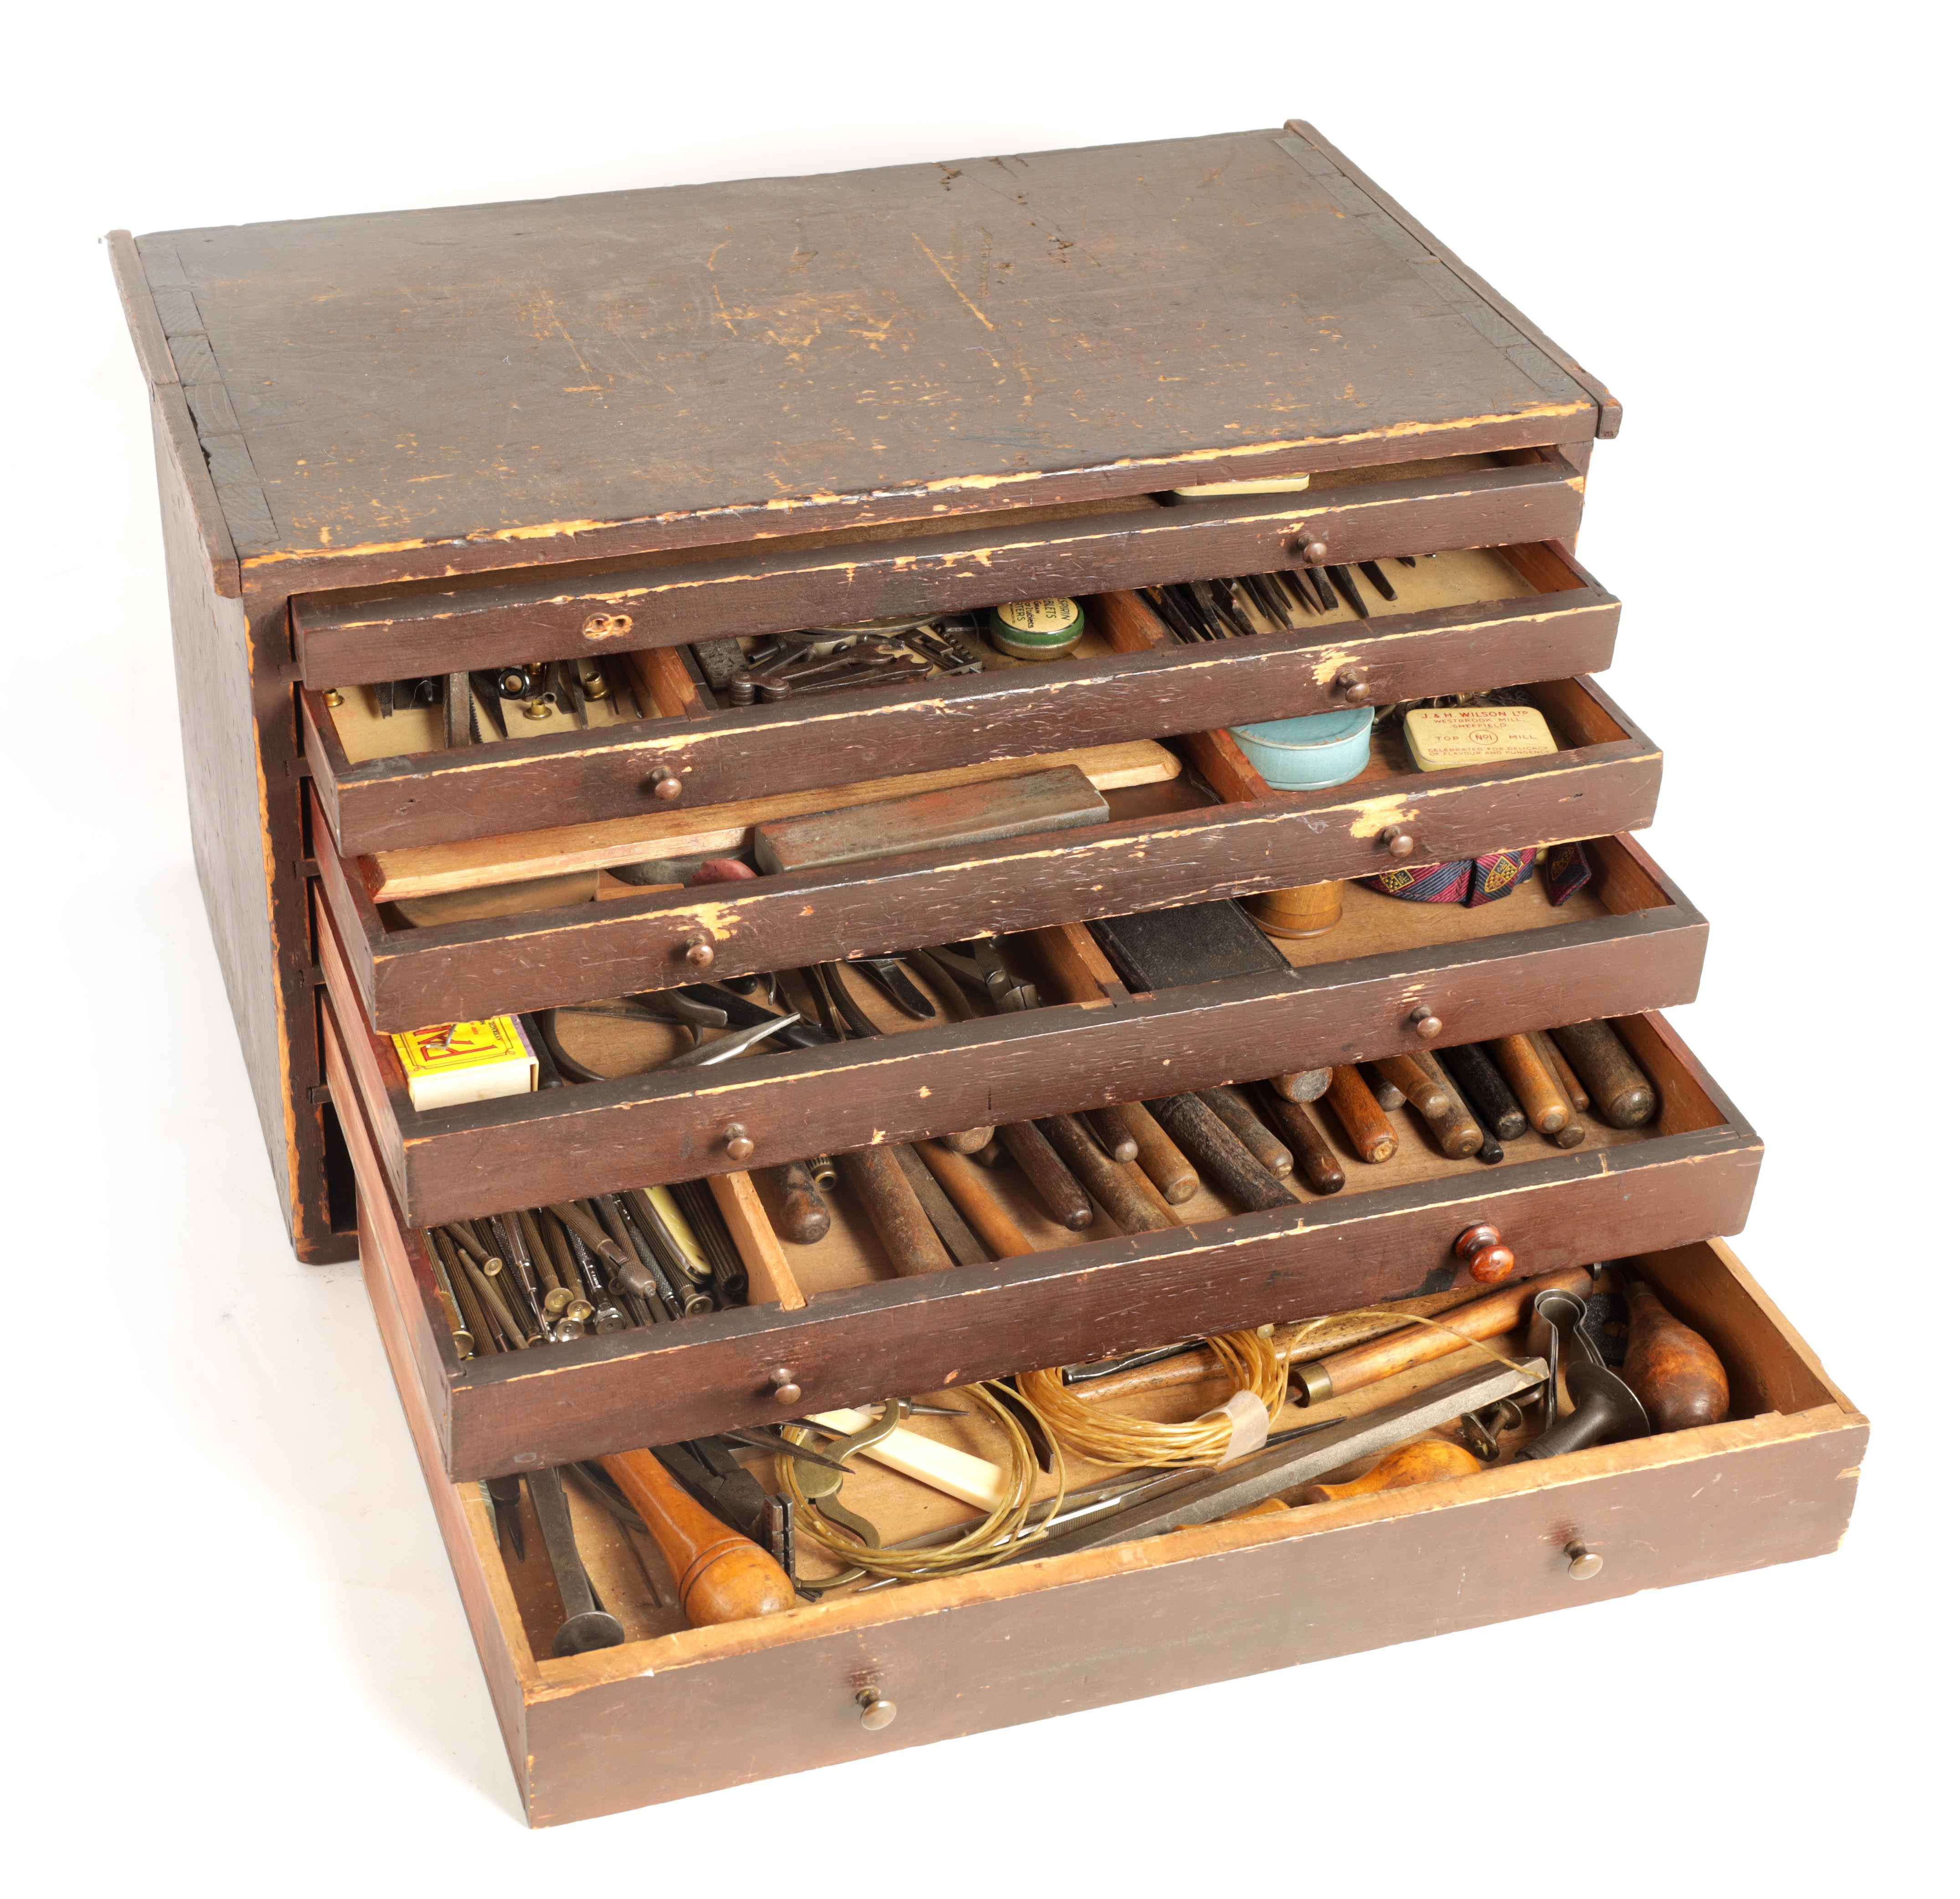 A LARGE COLLECTION OF JEWELERS AND WATCHMAKERS TOOLS contained in a set of pine drawers